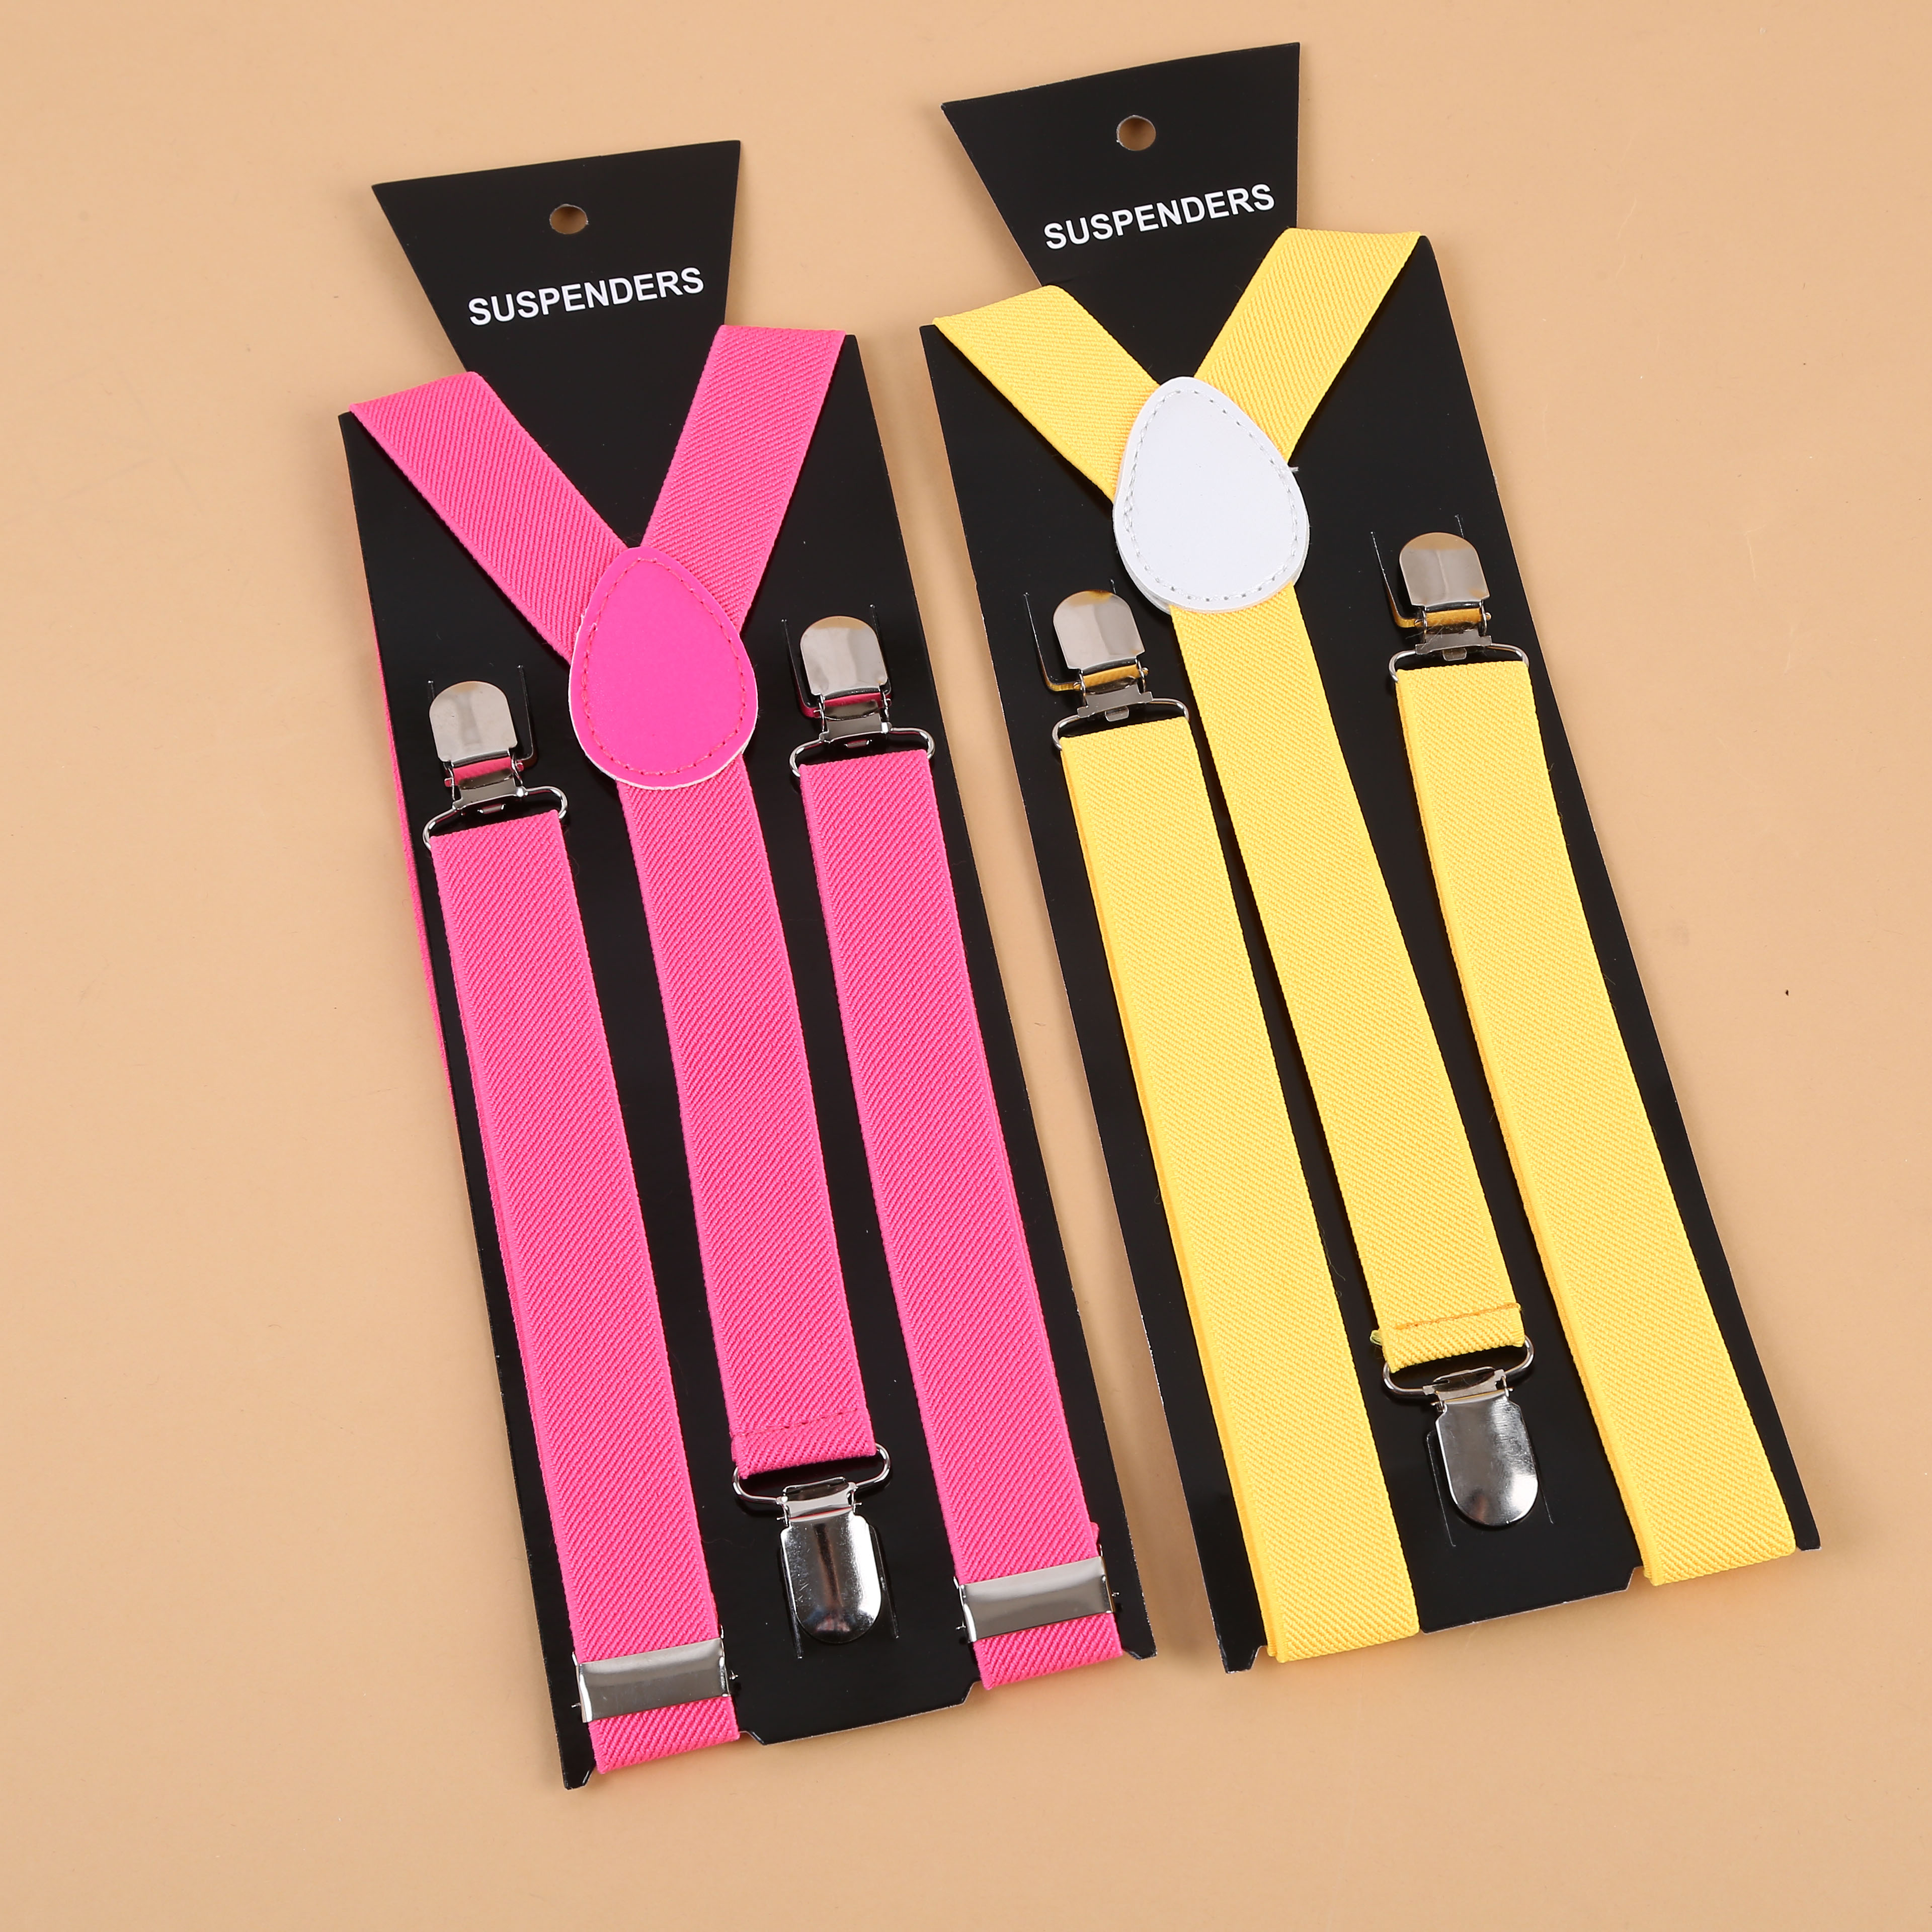 2dae1deca Supply Fashion 2018 suspenders vertical stripes mixed color general ...